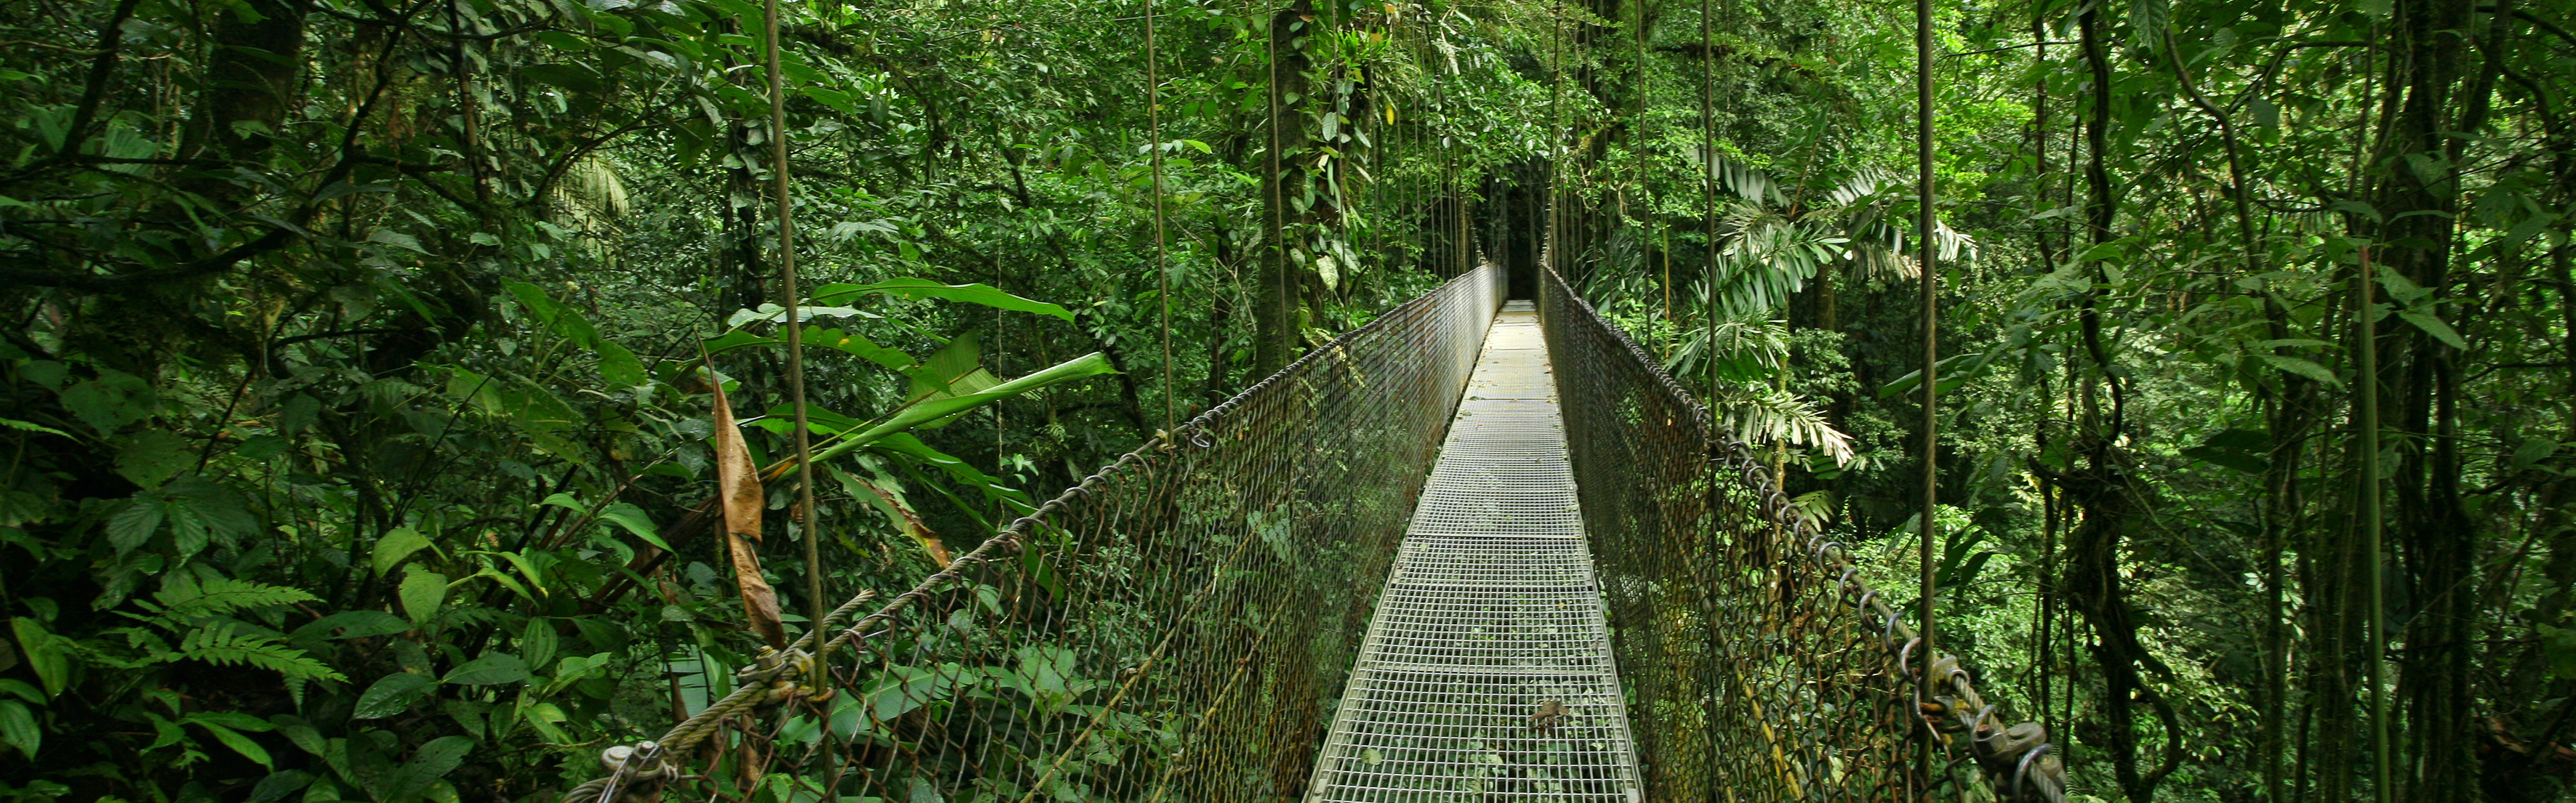 Costa Rica Rainforest Canopy Bridge